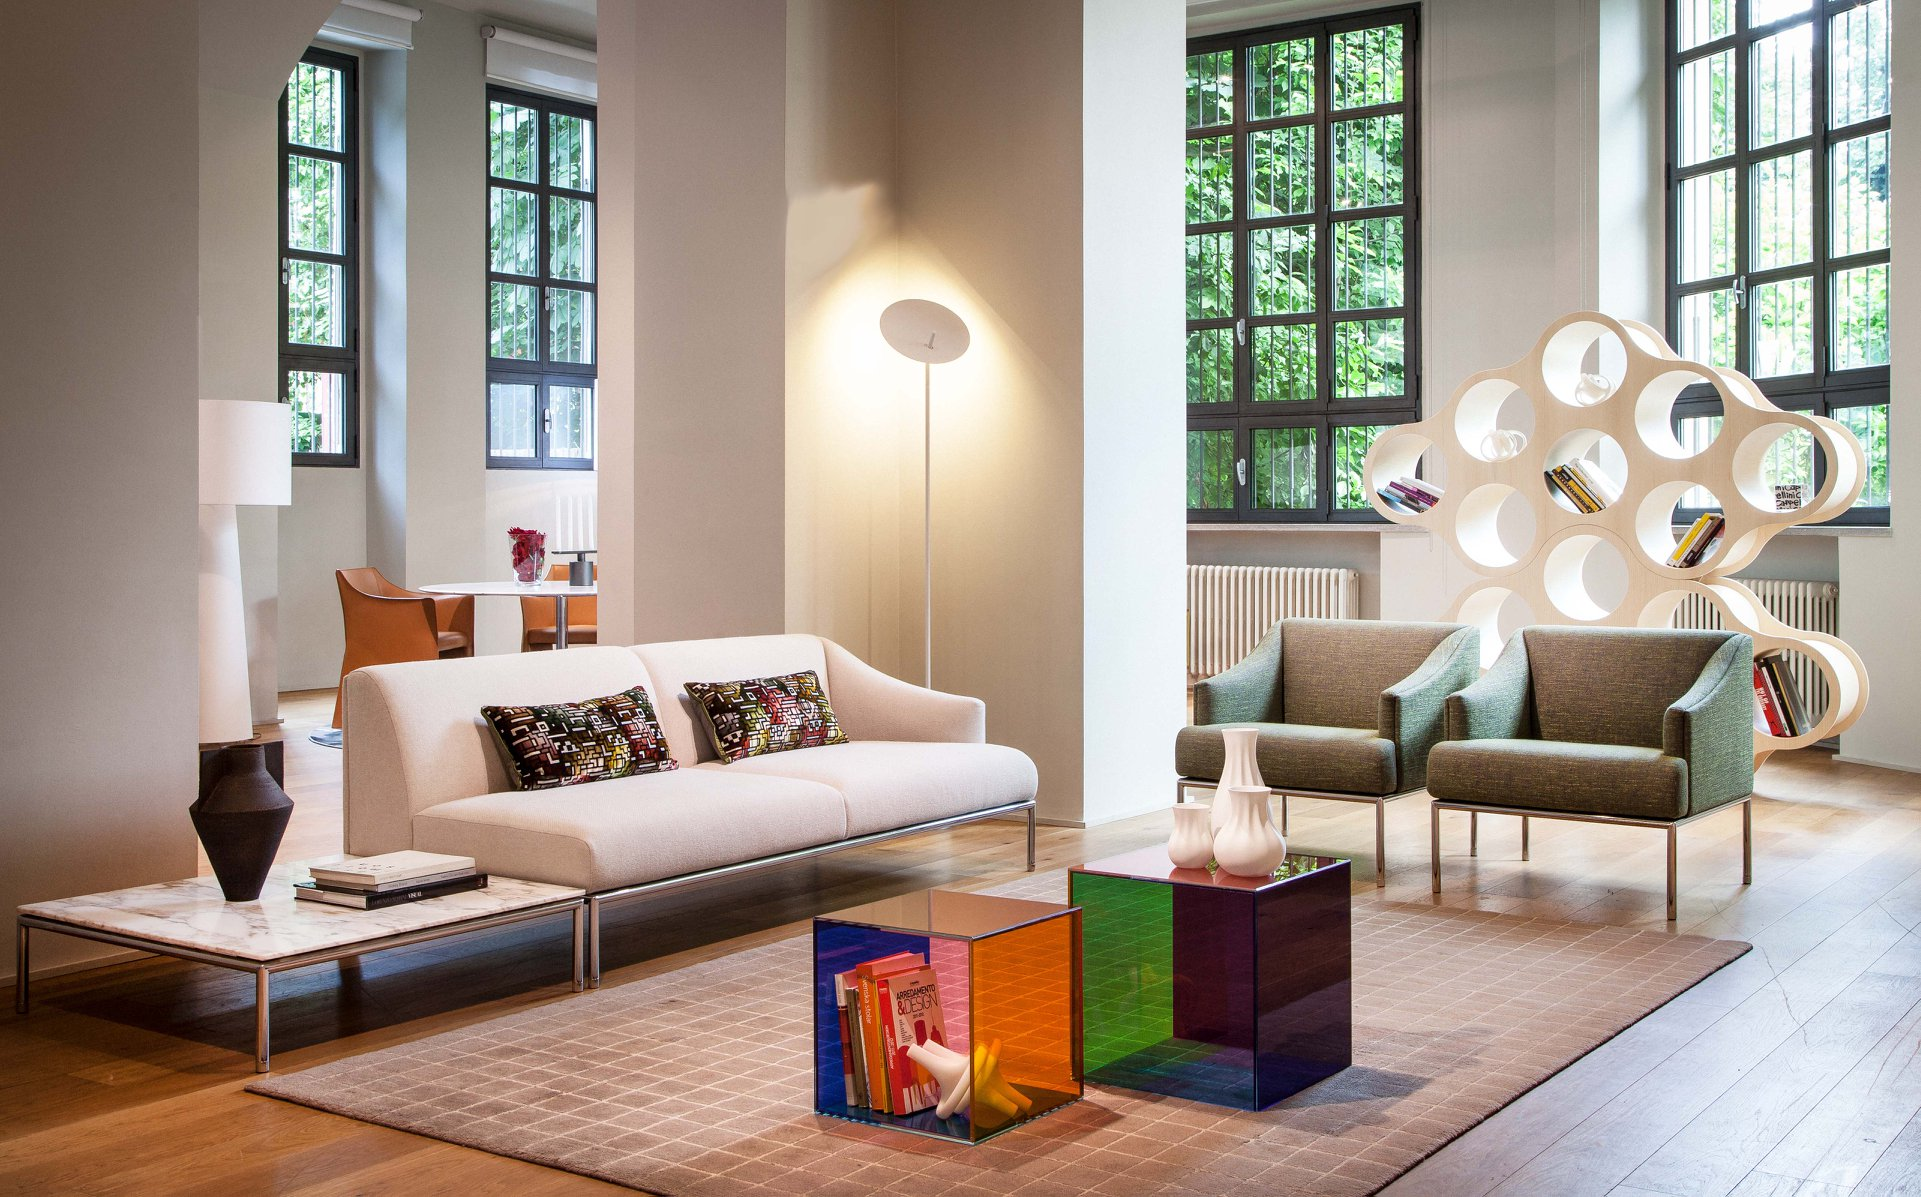 10 Tips to Design a Happier Home